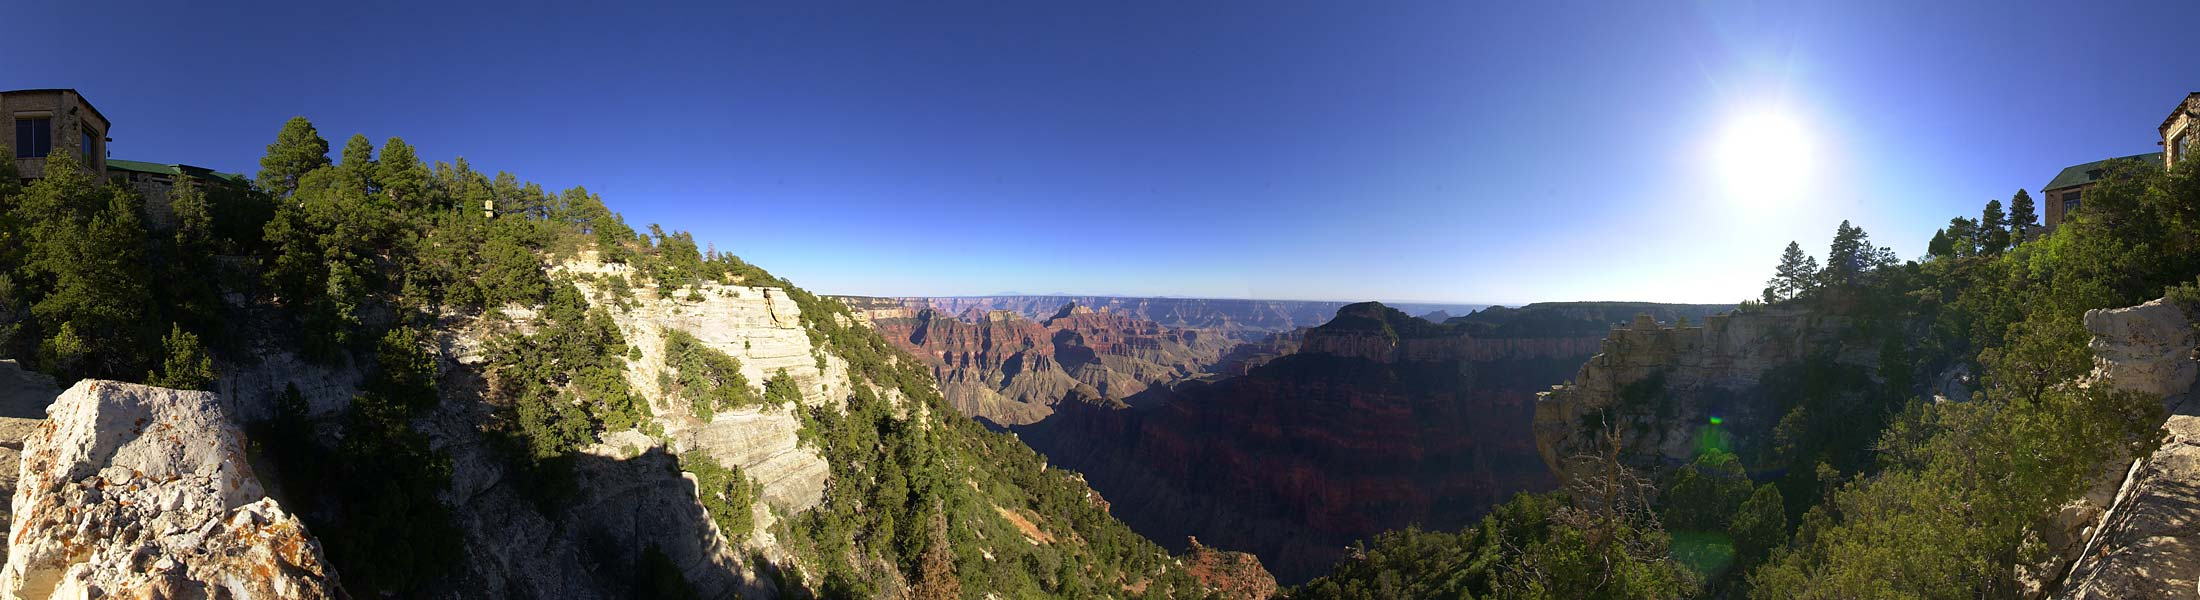 Grand Canyon National Park Virtual Tour